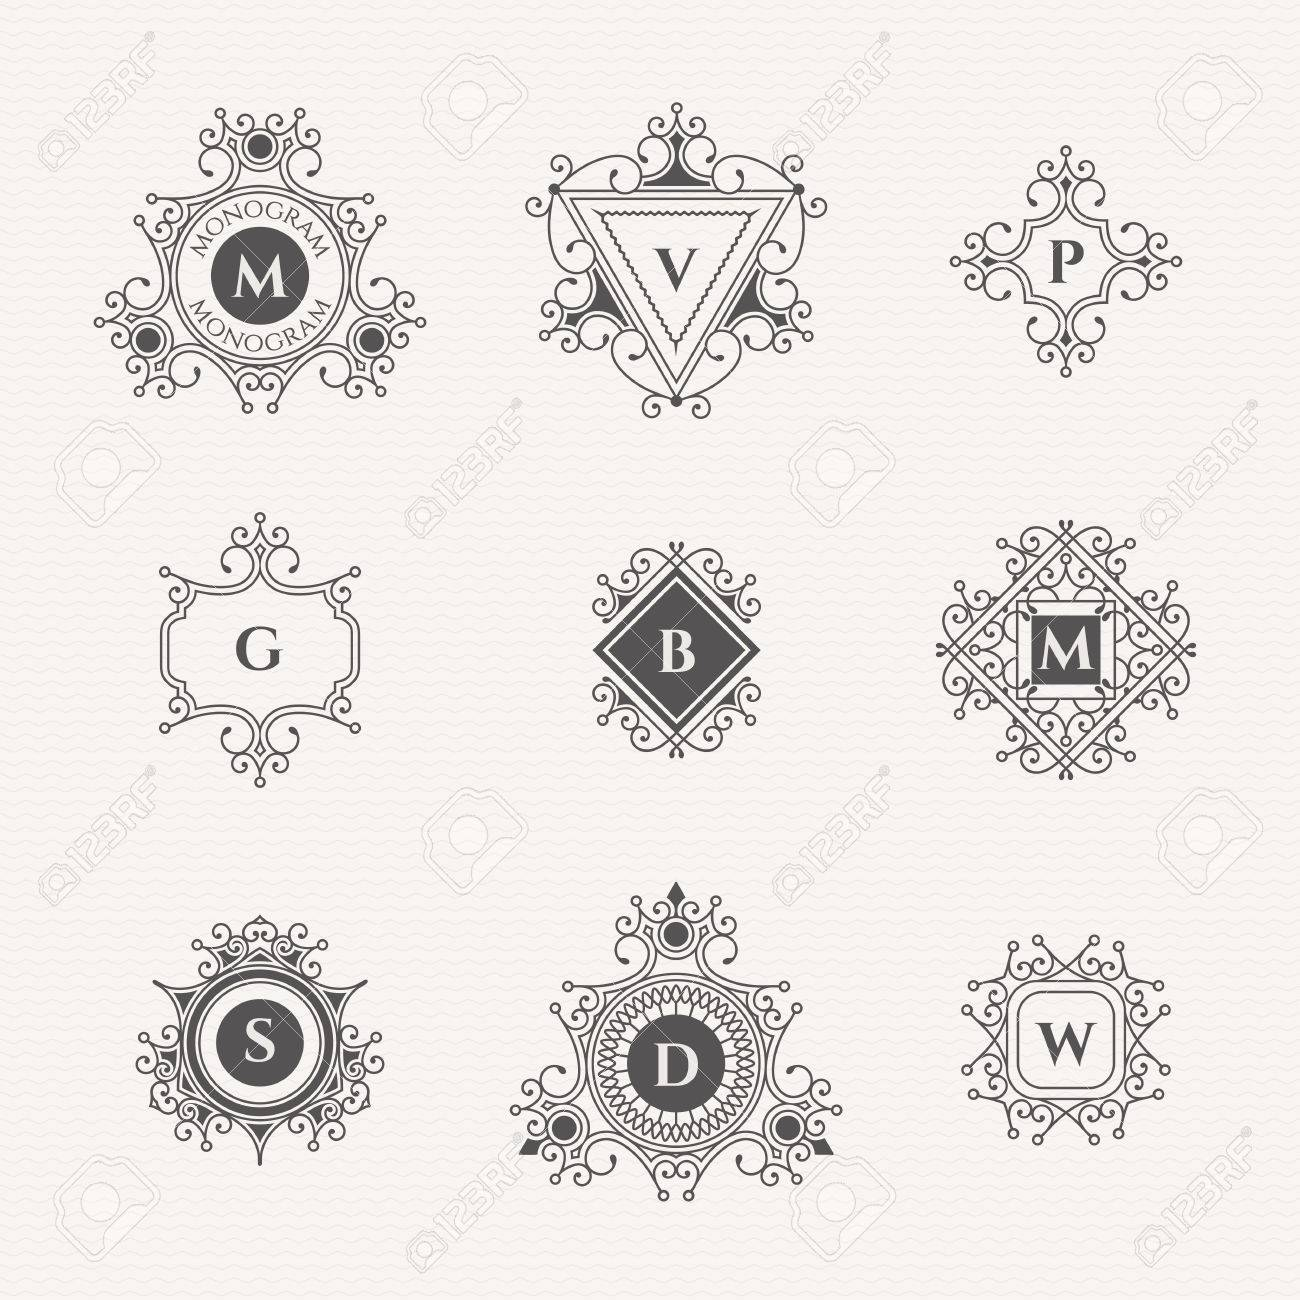 Set of decorative monograms. Design collection for labels, invitations, logos, banners, posters, badges, signage, stickers, cards. Graphic design page. - 50021833